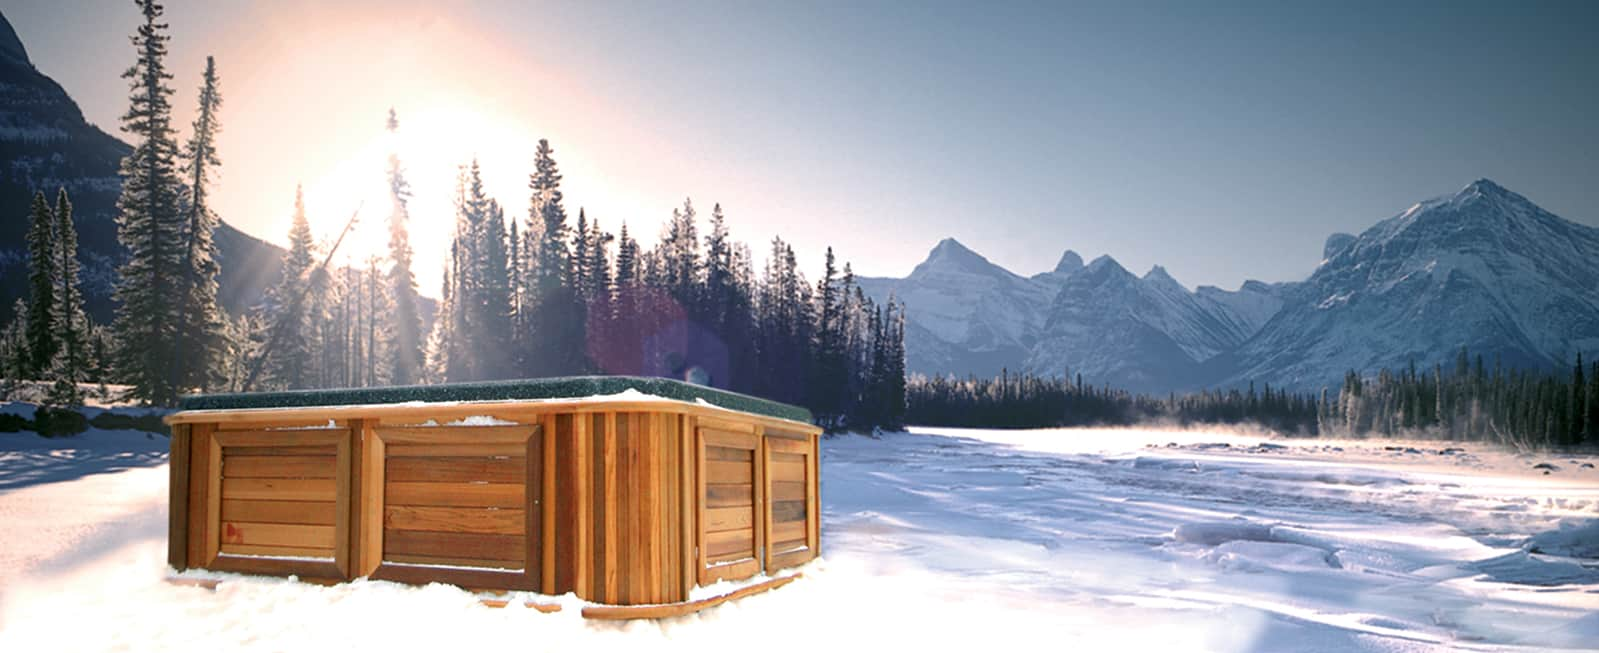 Arctic Spas - Engineered for Extreme Climates